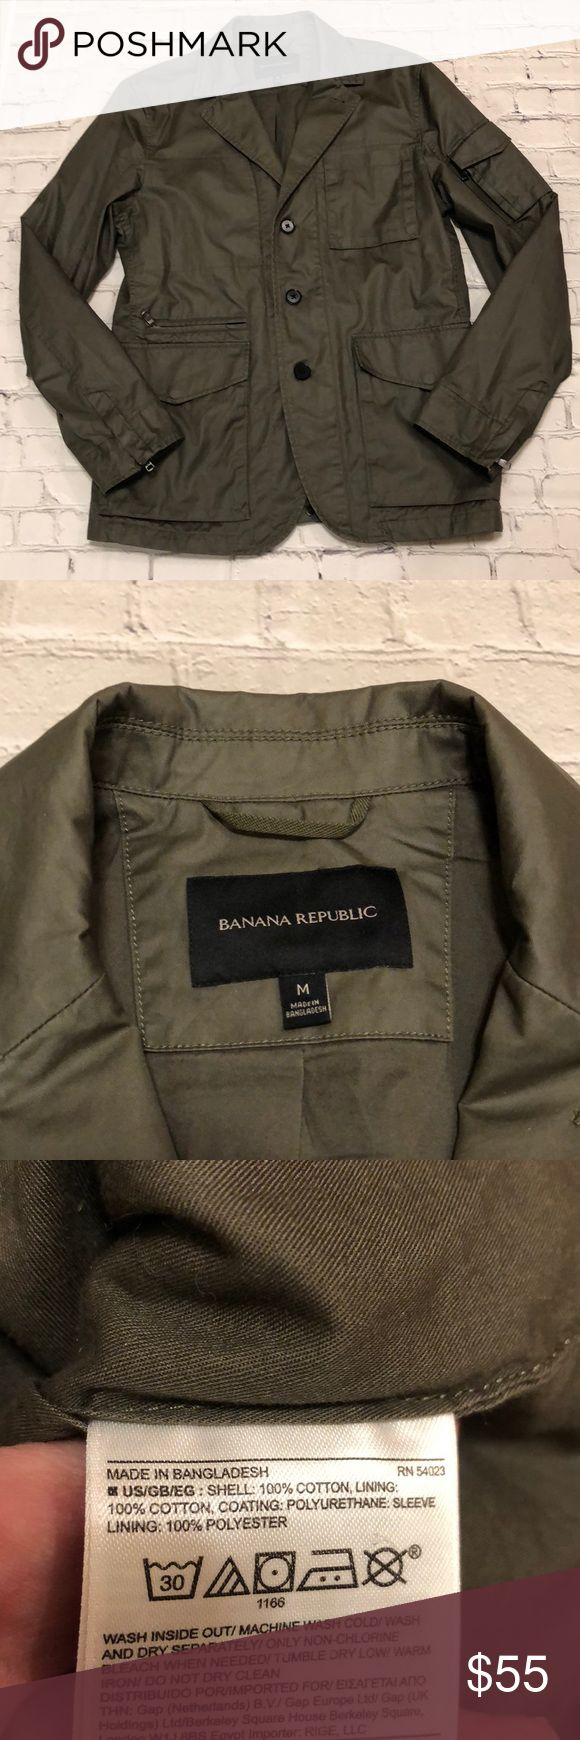 """Banana Republic Field Jacket Olive green field jacket with hidden zipper underneath button placket. Water resistant coated cotton exterior with lining. Multiple pockets. 21"""" across chest. 28"""" length. Banana Republic Jackets & Coats Military & Field"""